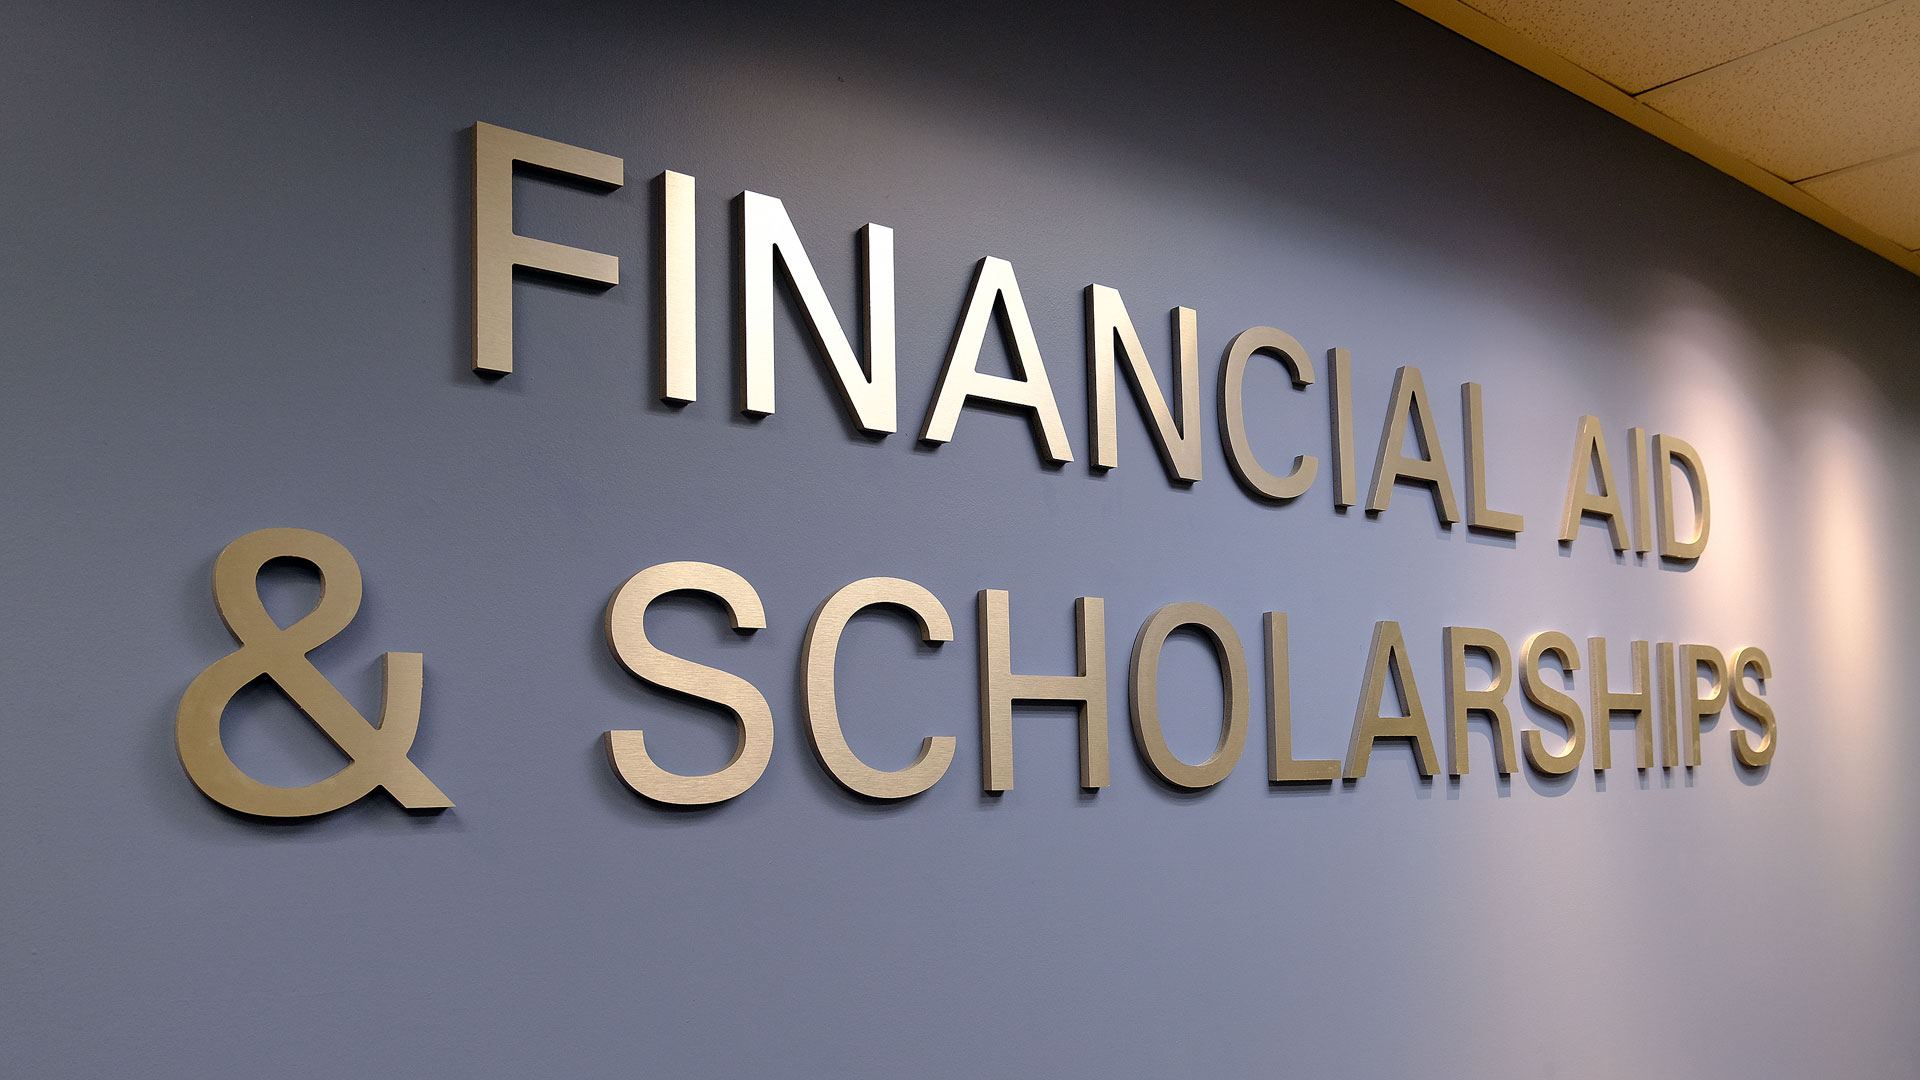 Financial Aid & Scholarships wall lettering